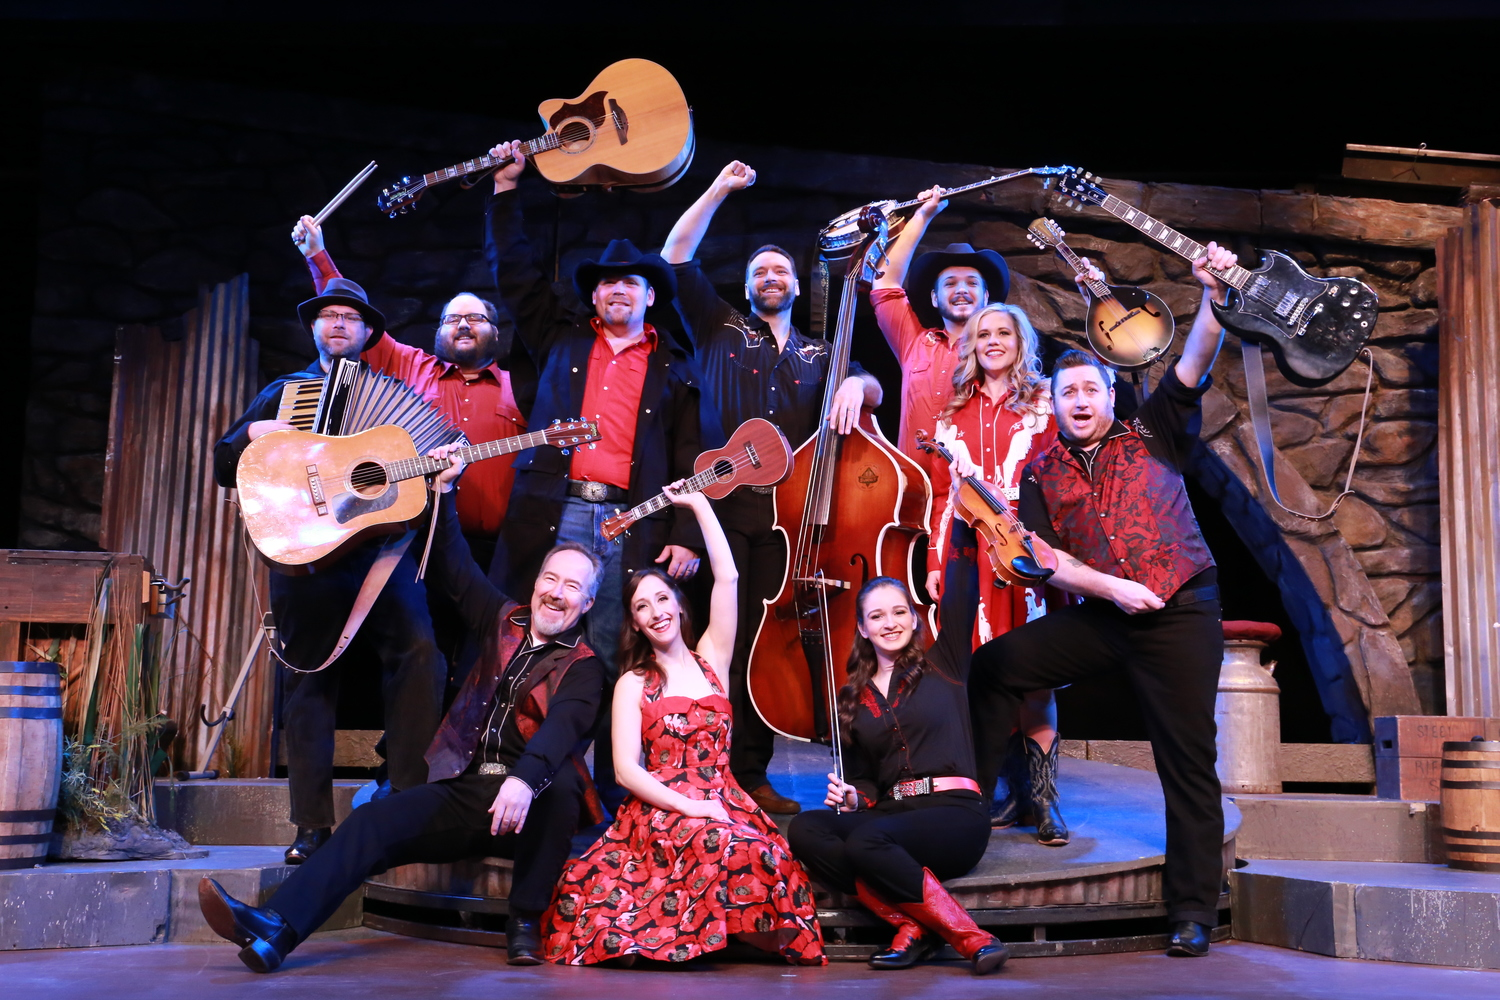 BWW Review: RING OF FIRE at Broadway Palm Has Rhythm!